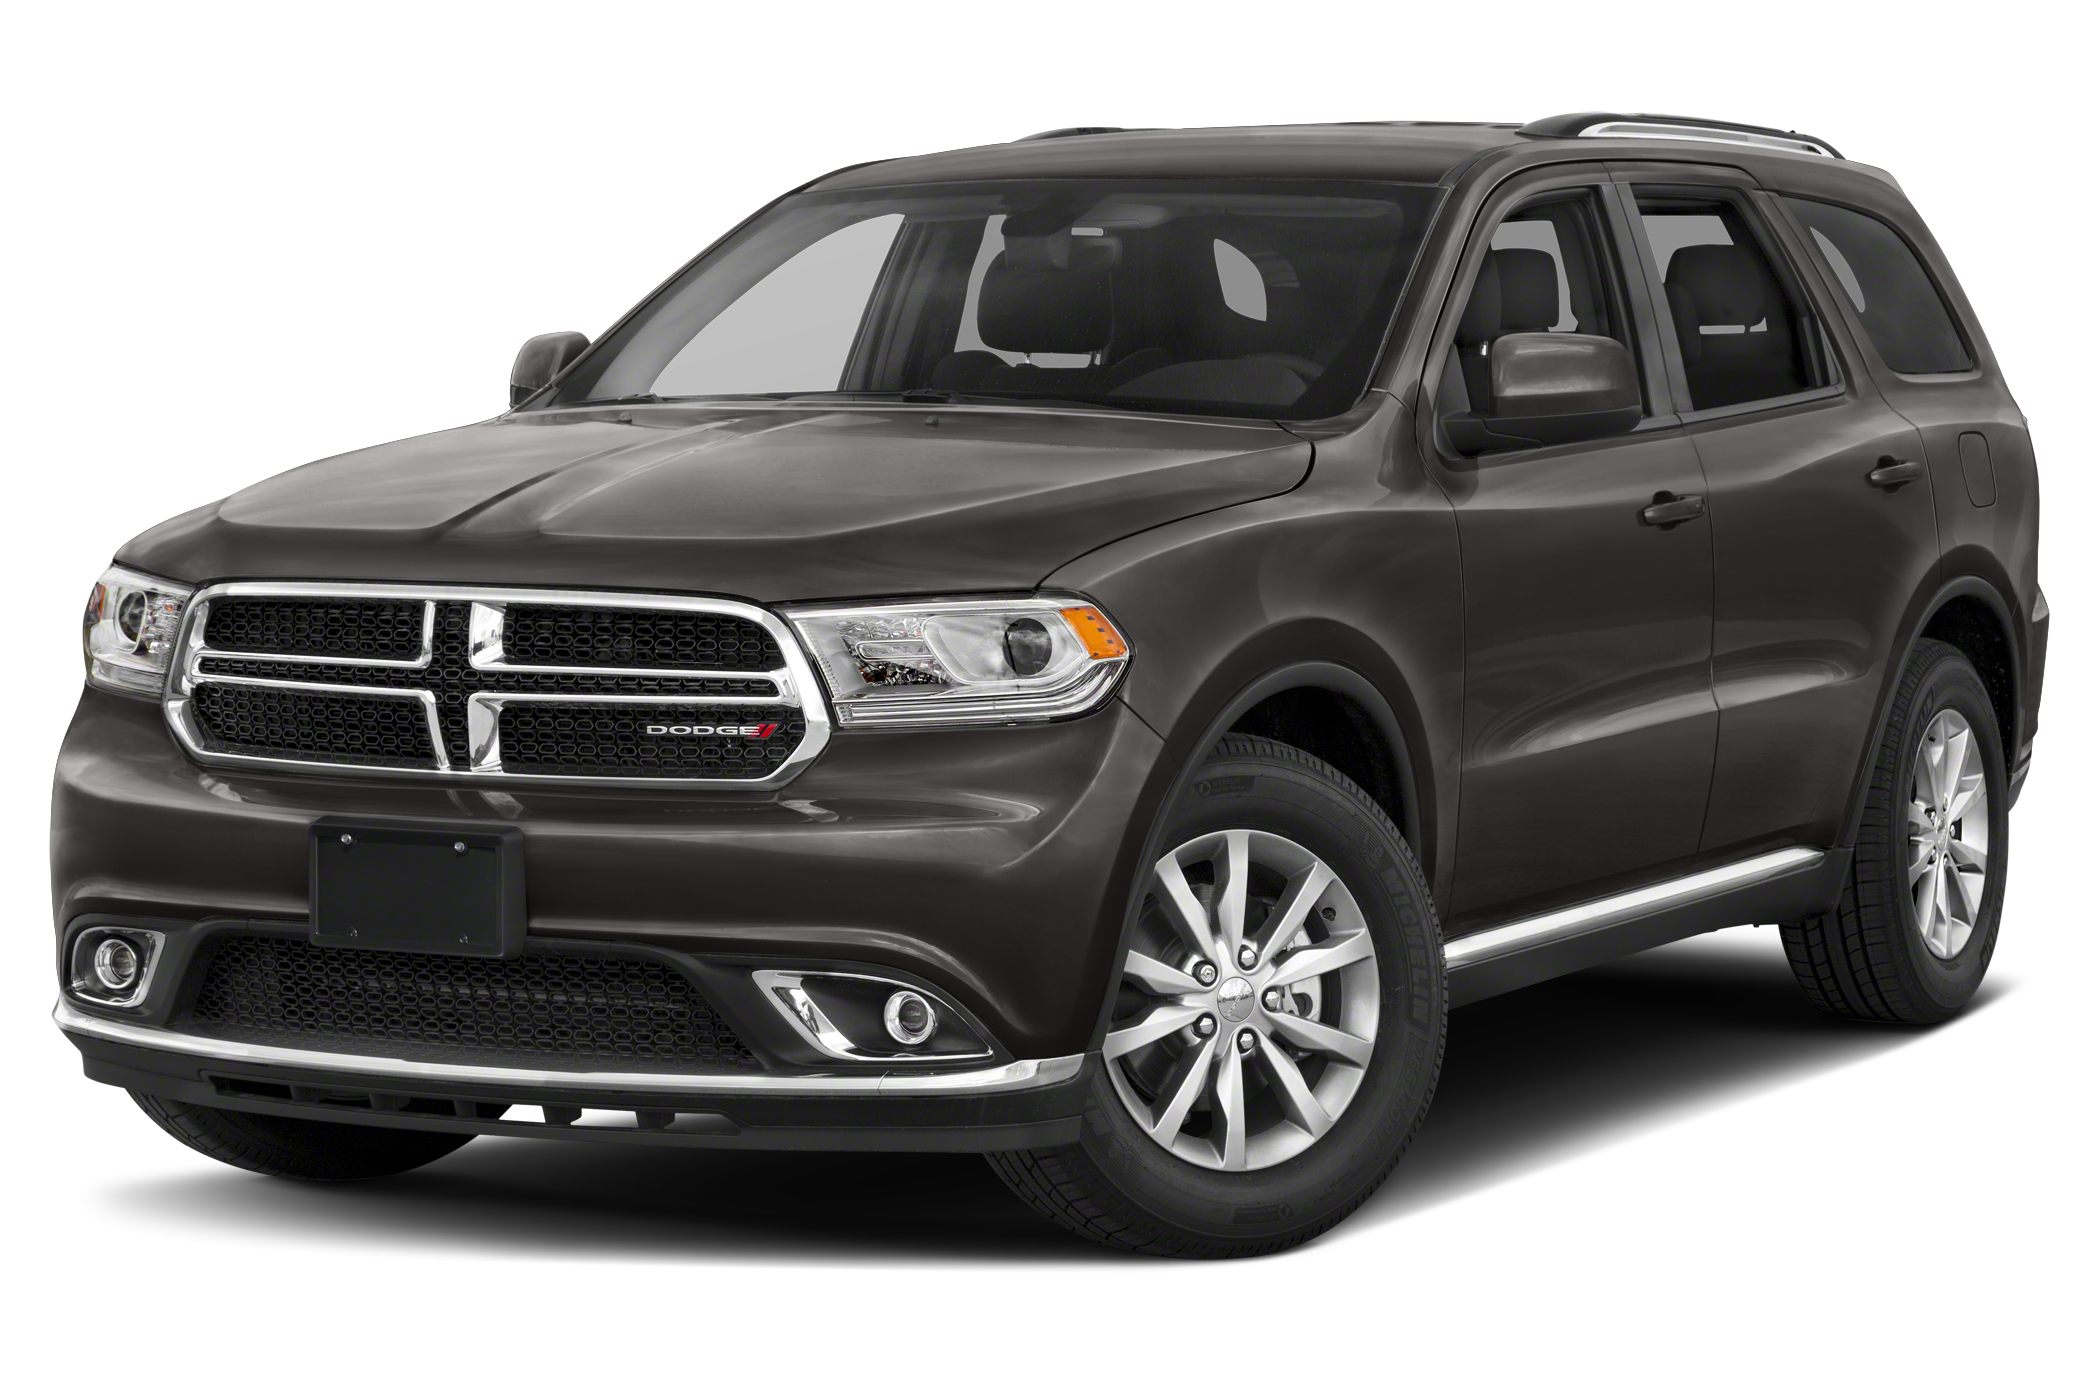 2018 dodge durango gt for sale vin 1c4rdhdg9jc